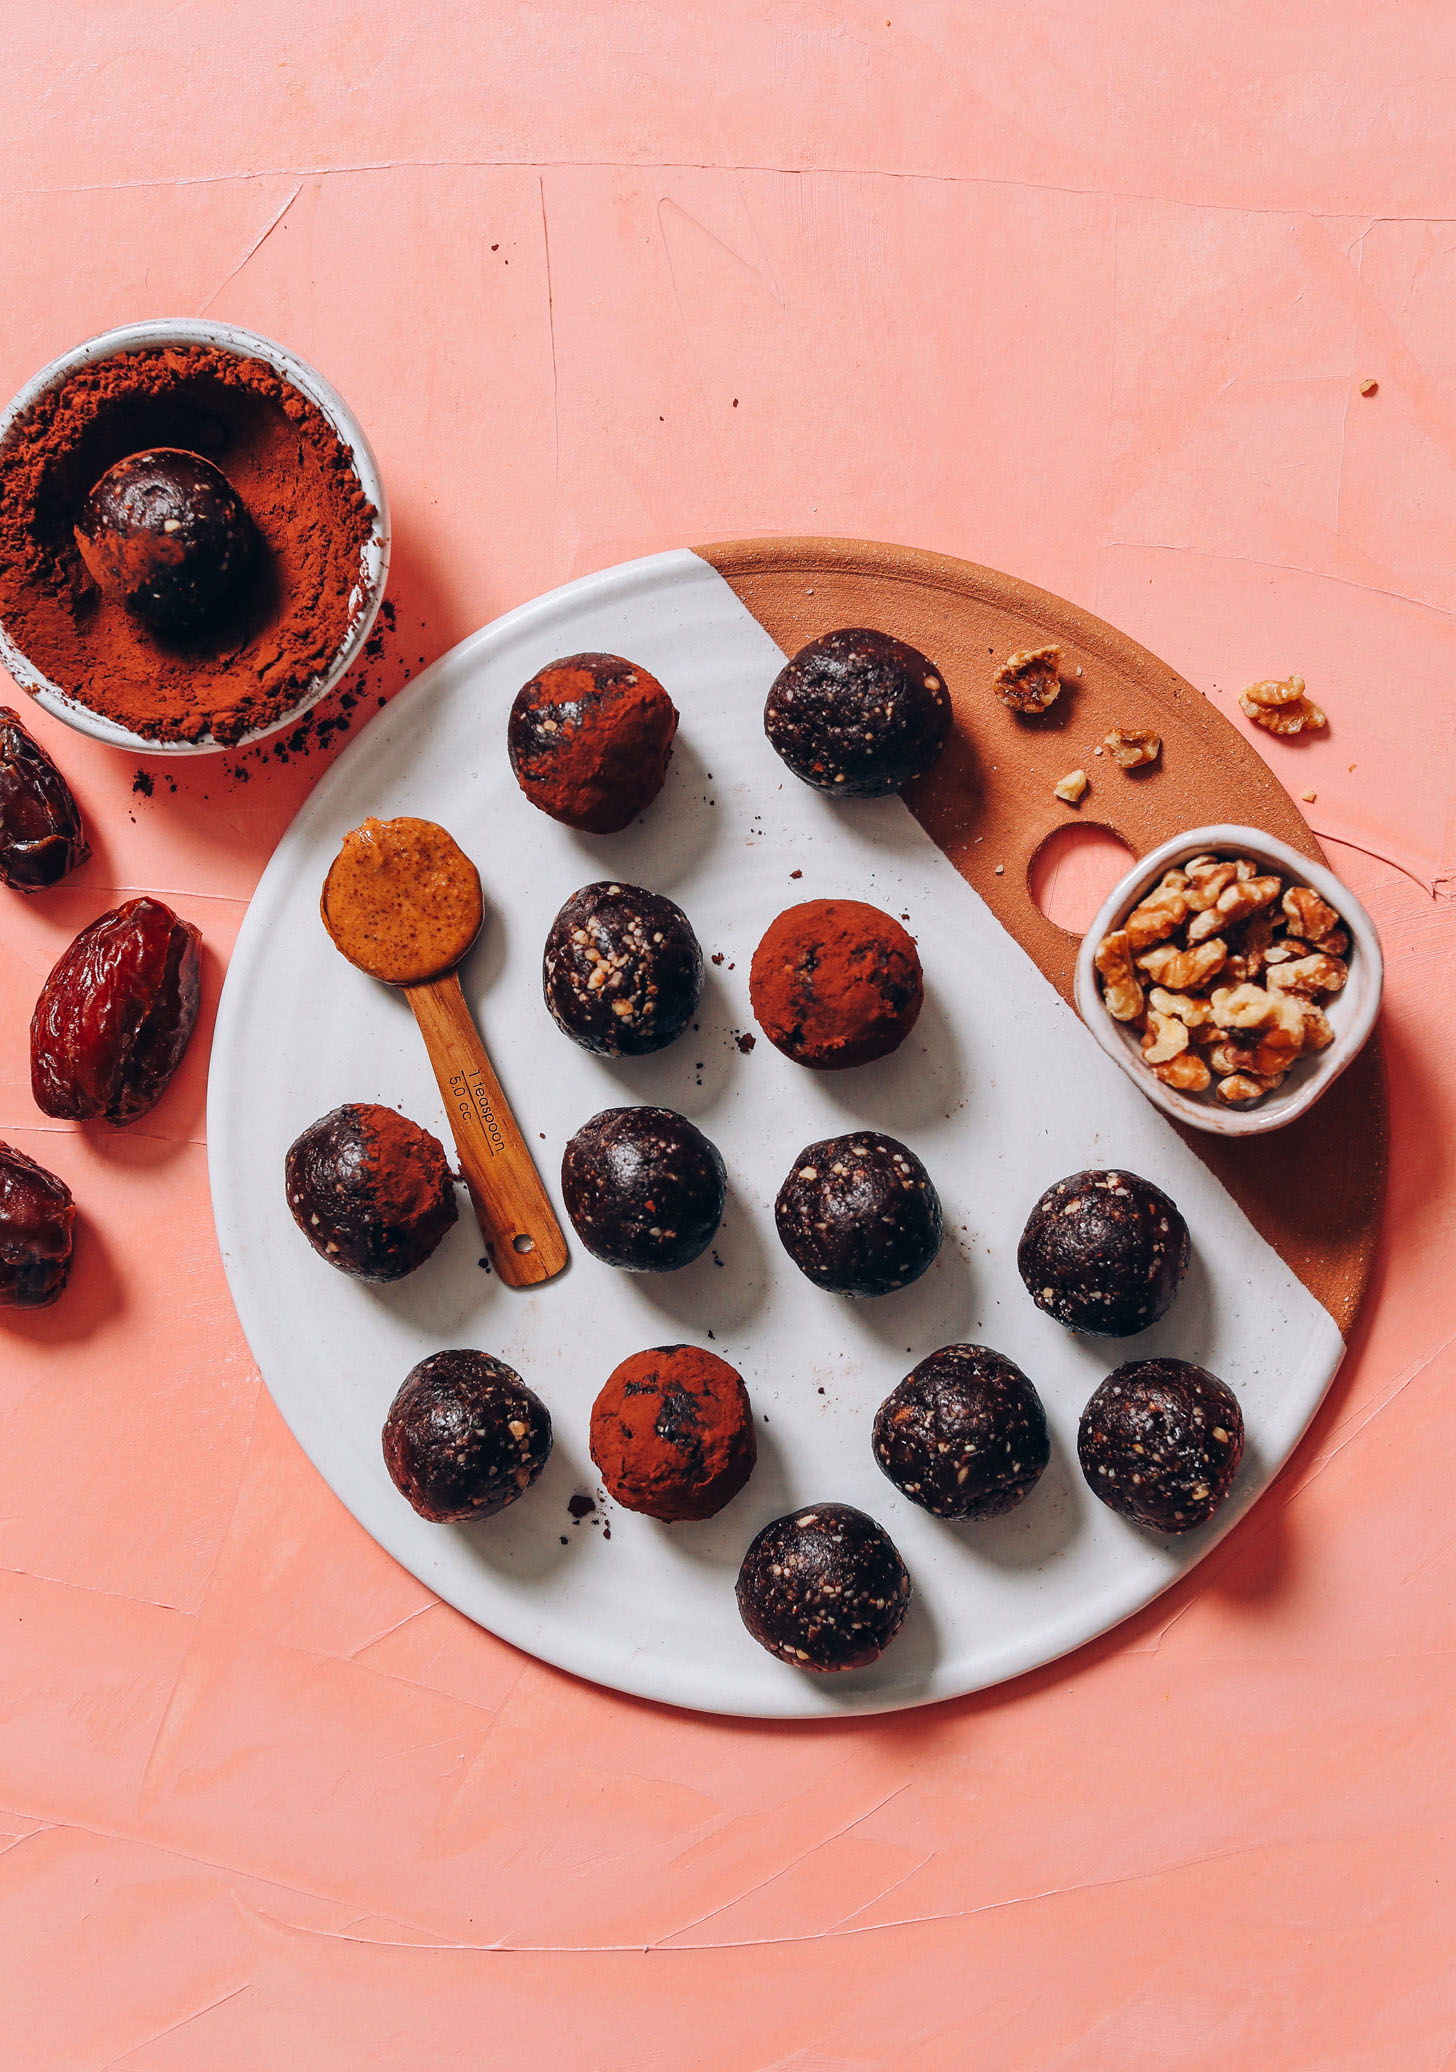 Dates, almond butter, cacao, and walnuts next to a tray of Vegan Brownie Bites